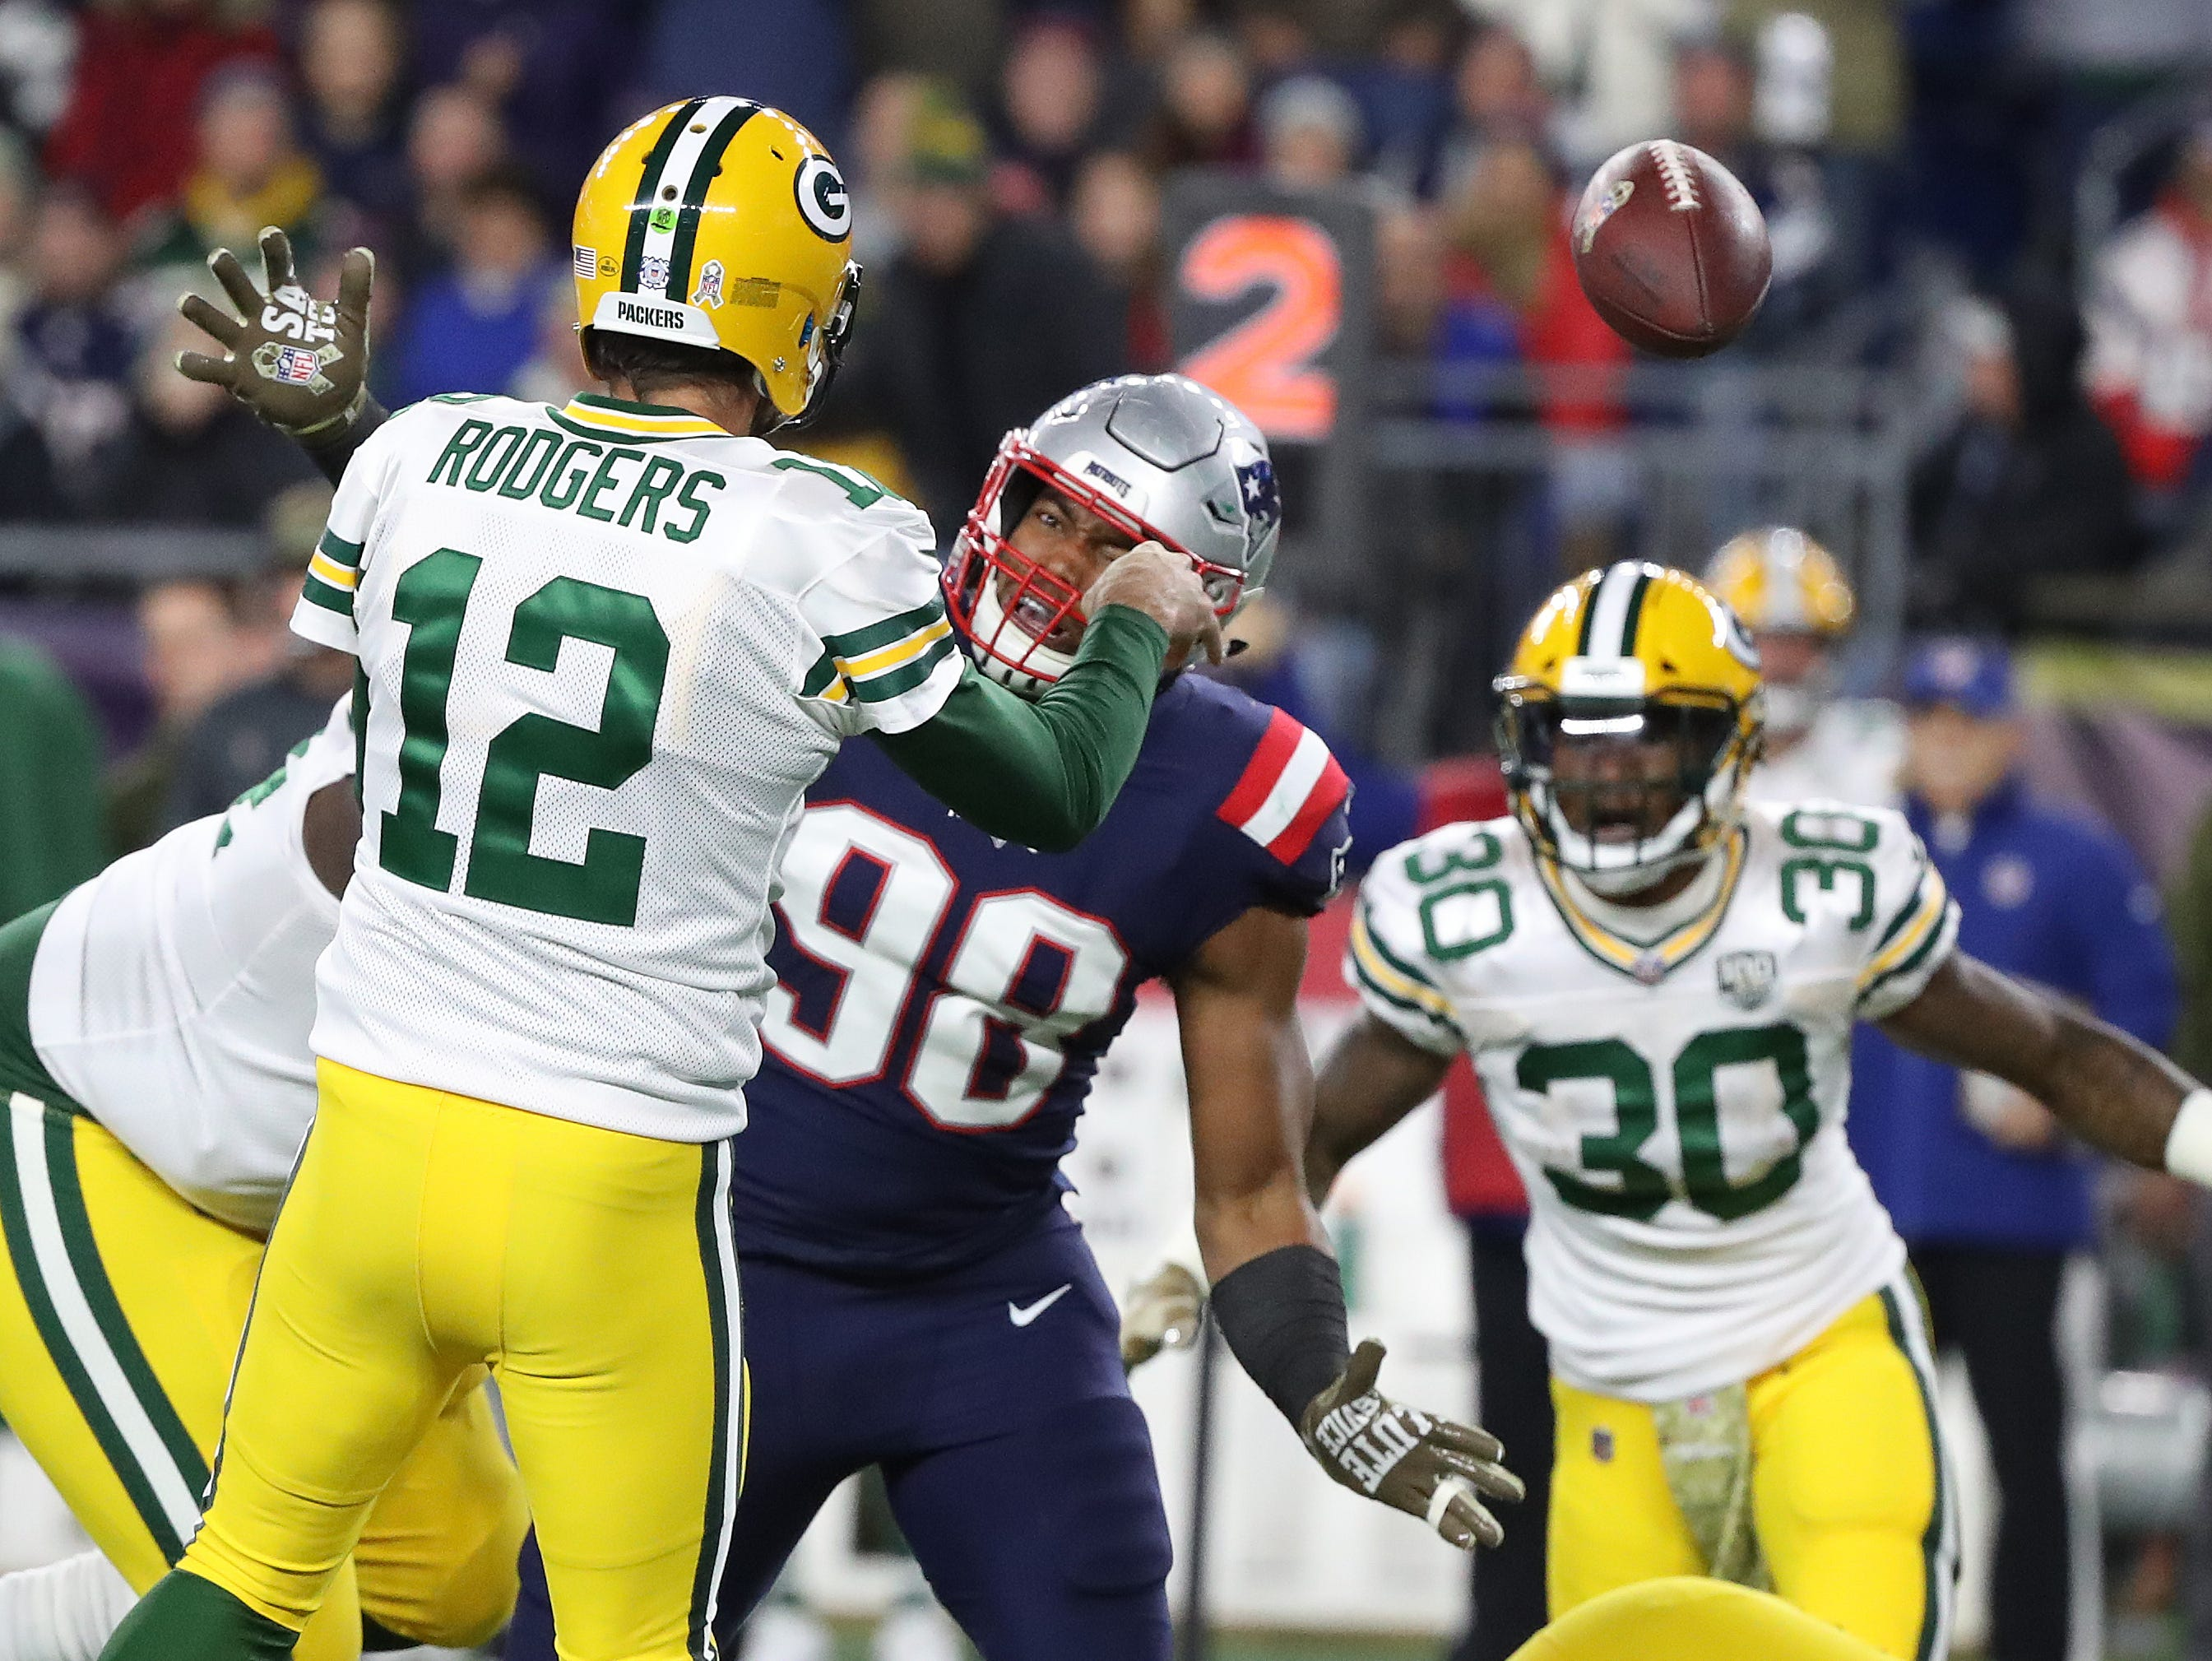 Green Bay Packers quarterback Aaron Rodgers (12) has two get rid of the ball as defensive tackle Malcom Brown (90) breaks into the pocket against the New England Patriots Sunday, November 4, 2018 at Gillette Stadium in Foxborough, Mass.